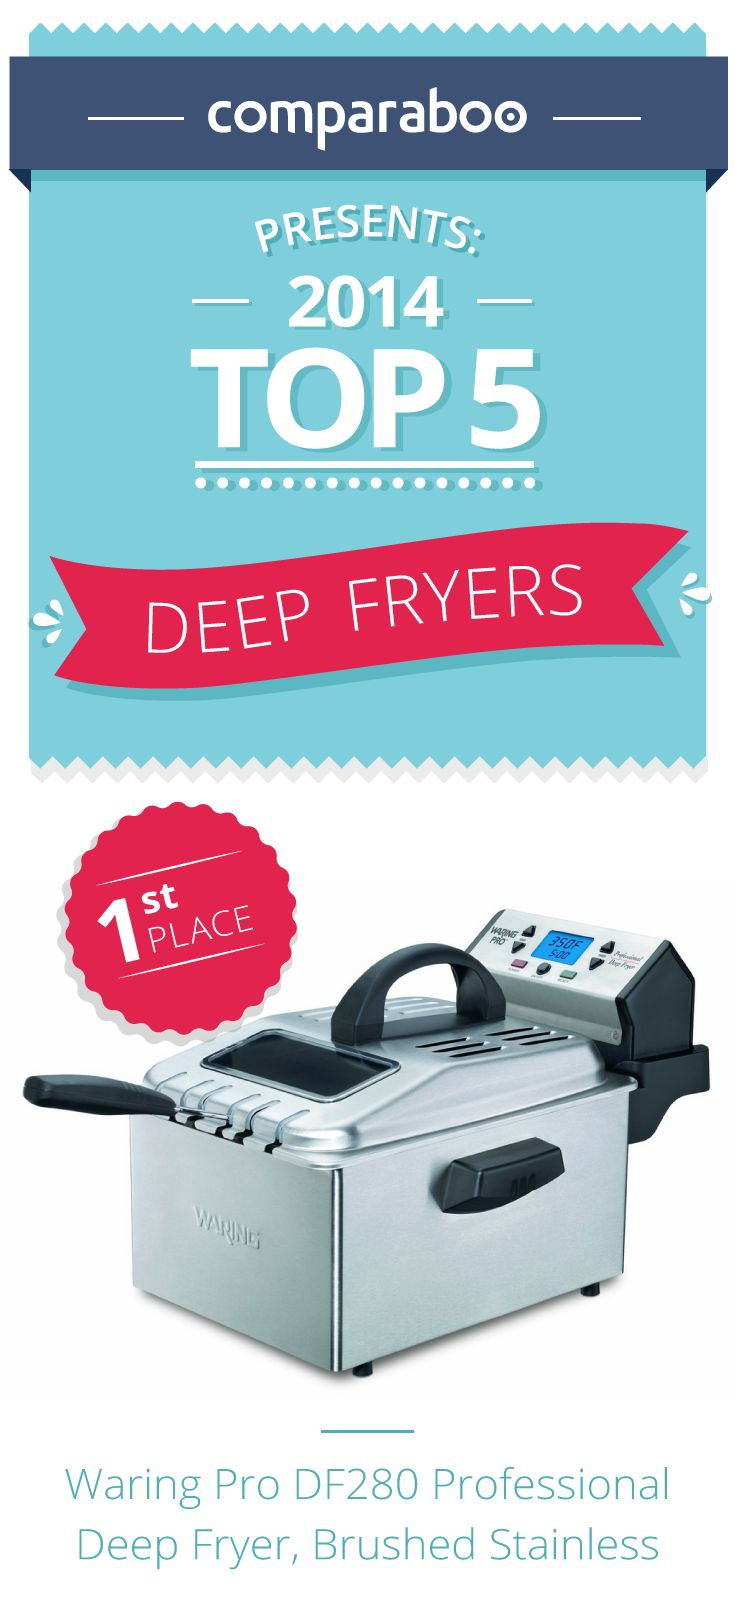 When shopping for a fryer, there are multiple options and features to consider. It is important to know the fryer's capacity, whether it has multiple/rotating baskets, a temperature control system, has a filter,  has a timer & safety features. We've compiled the top 10 best deep fryers for your shopping needs! #cooking http://www.comparaboo.com/deep-fryers